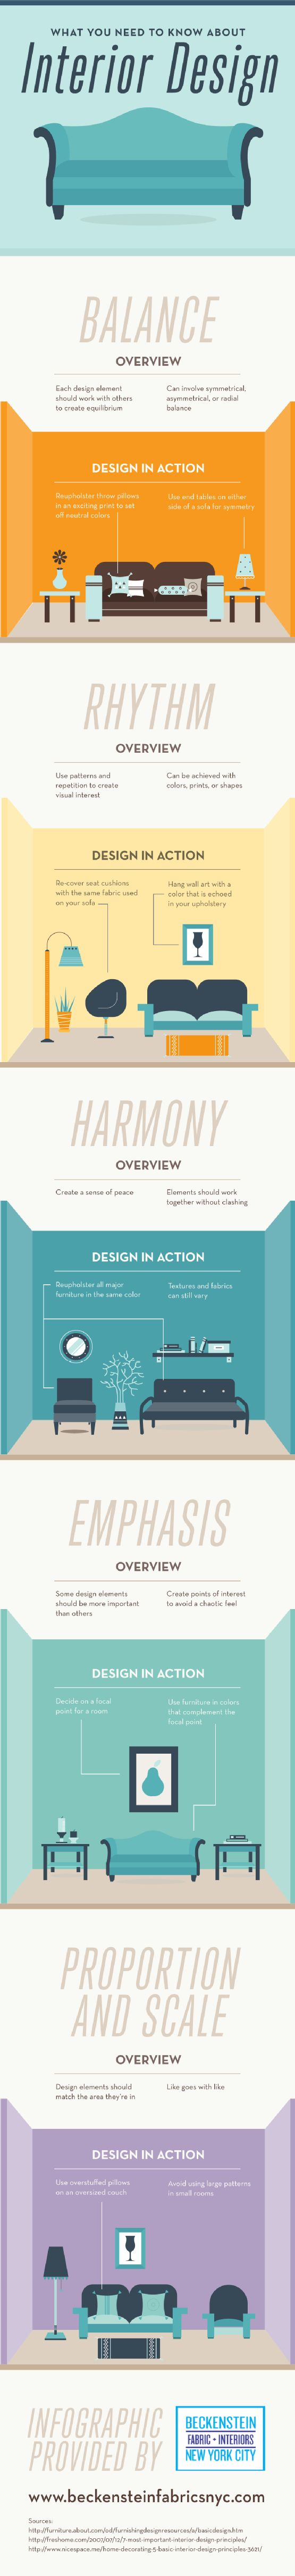 What You Need To Know About Interior Design [INFOGRAPHIC] -- Marvelous  visual of a crash course in using basic design principles in interiors!